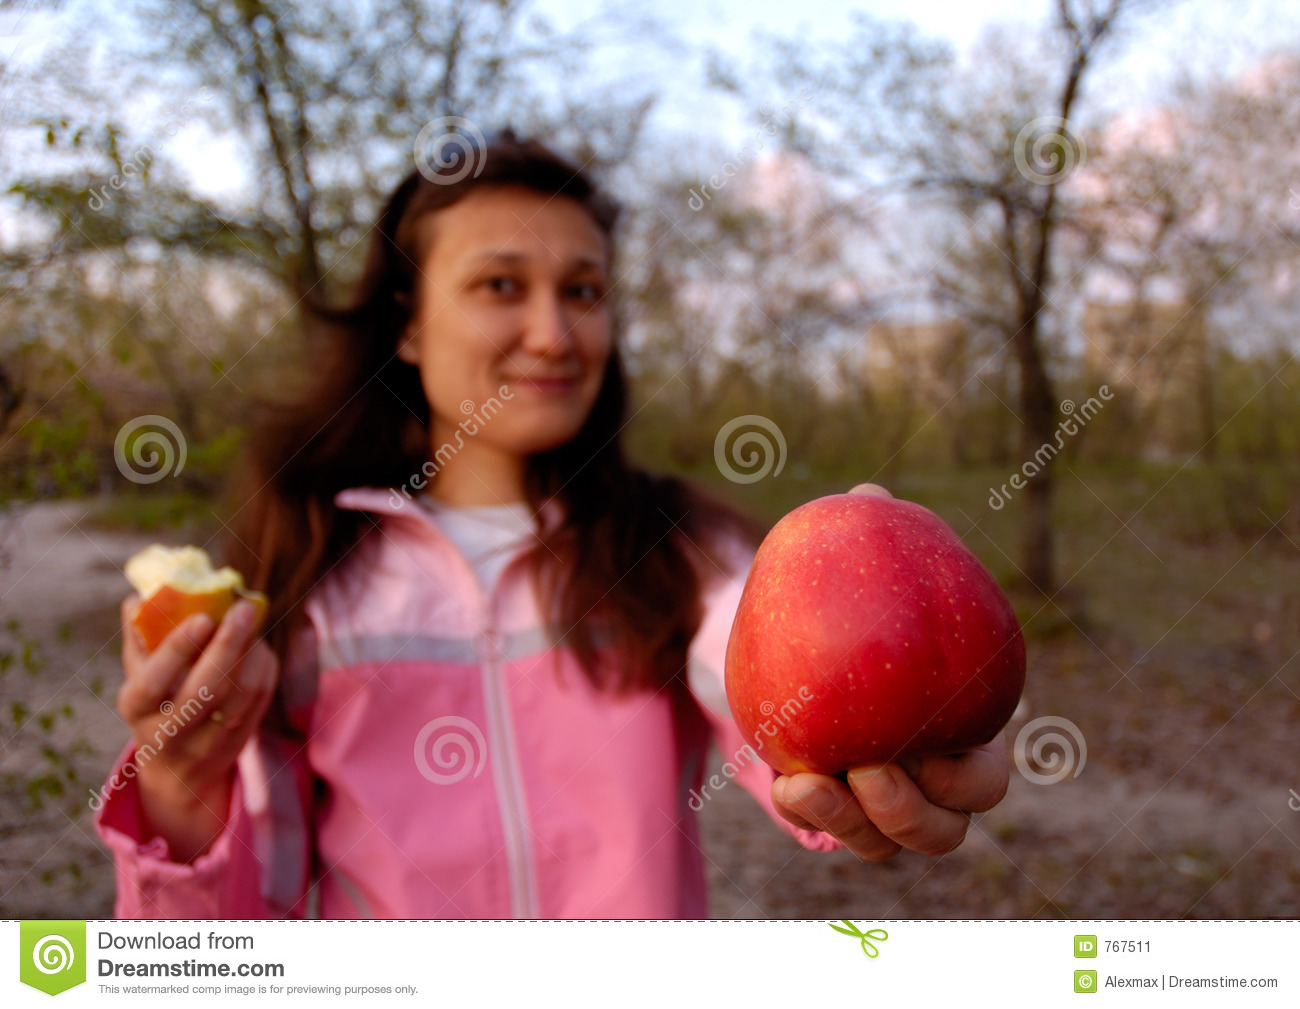 Girl with big red apple in her hand